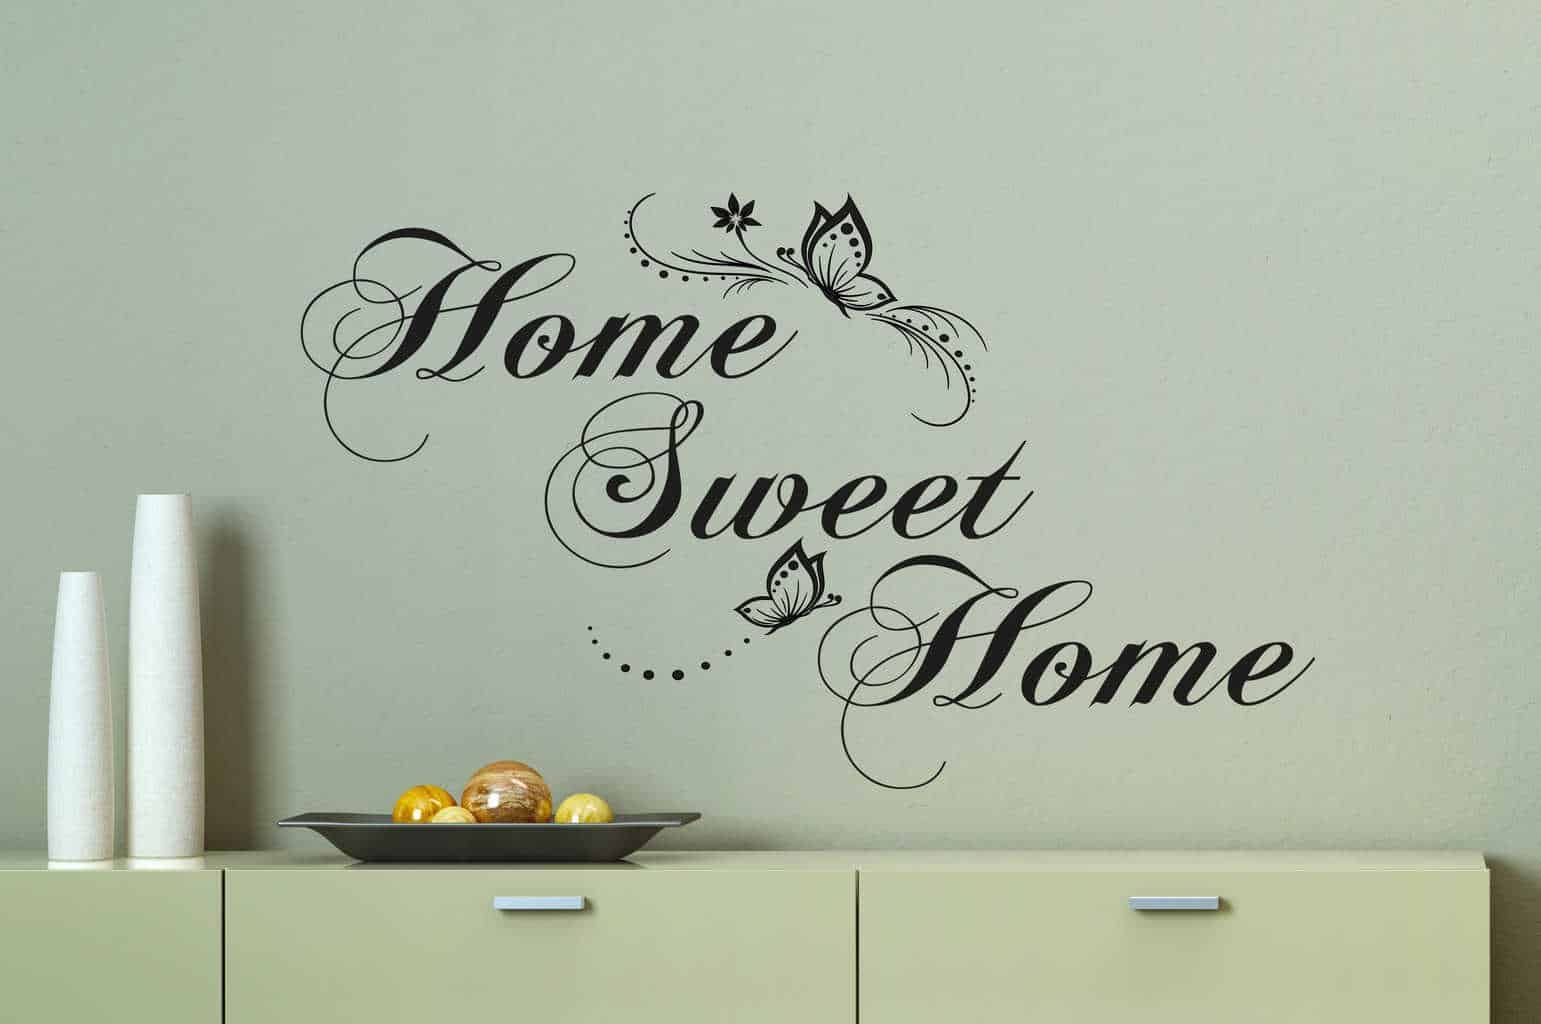 Home Sweet Home Butterfly Wall Decal Sticker By Ey Decals